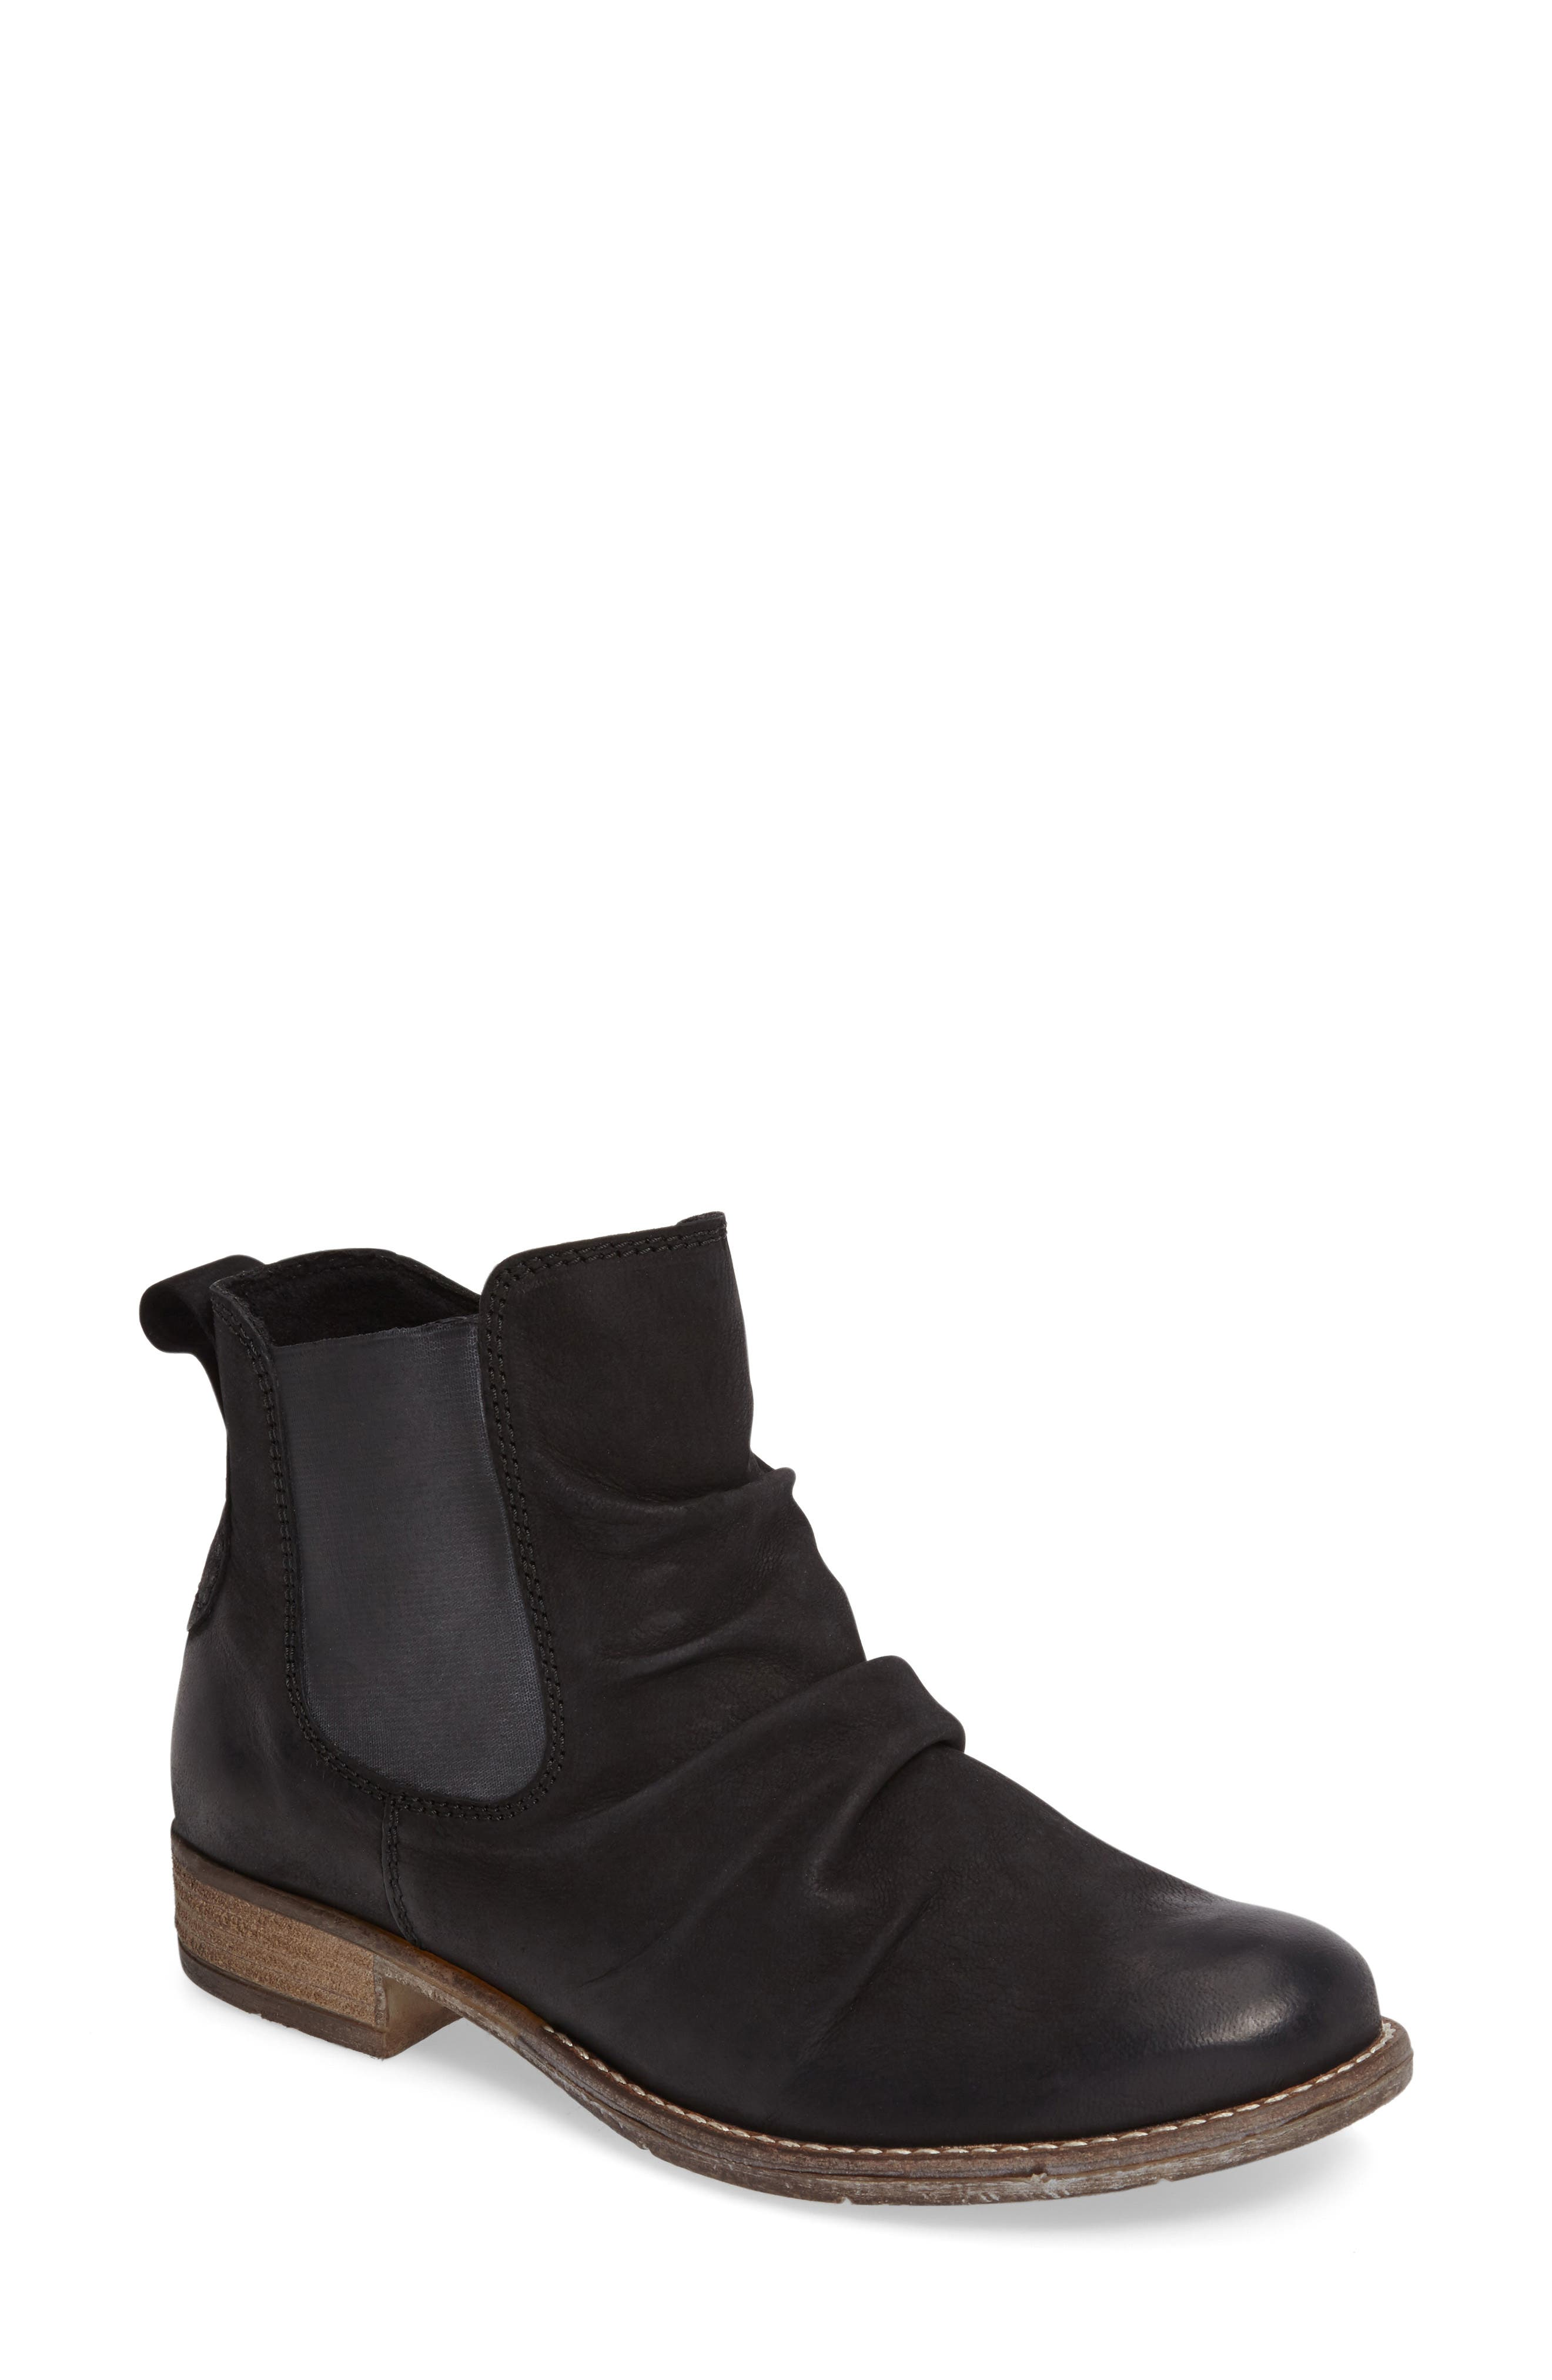 Sienna 59 Slouchy Chelsea Bootie,                             Main thumbnail 1, color,                             004